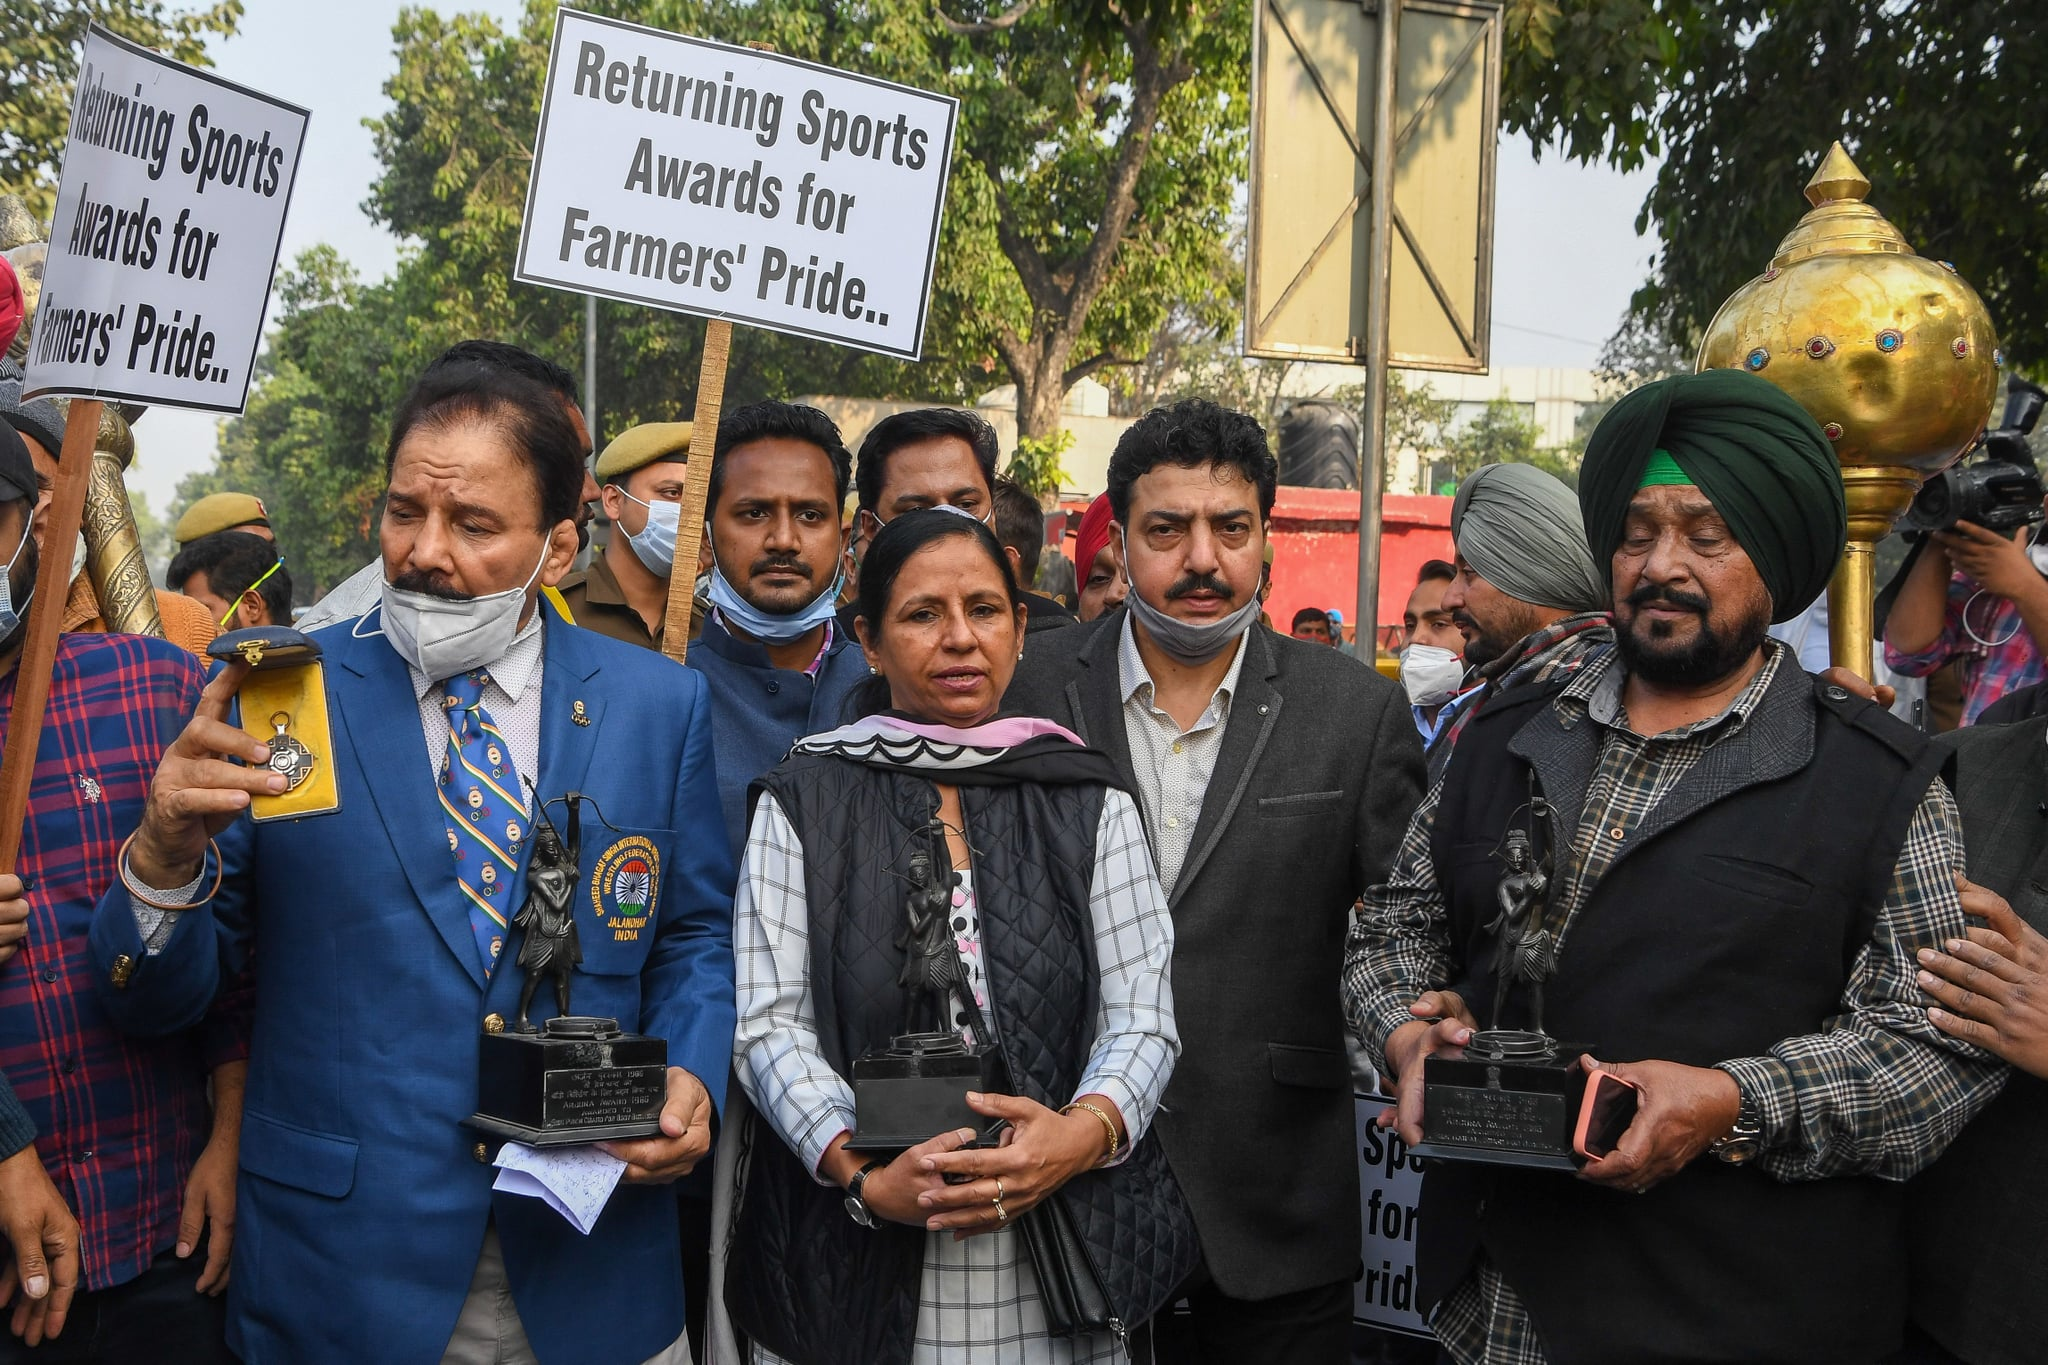 Former wrestler Kartar Singh (R) and former field hockey players Jasbir Kaur (C) and Gurmail Singh (R) pose with their trophies as they march to the the President's house to return their awards in support of the farmer's protest against the recent agricultural reforms, in New Delhi on December 7, 2020. (Photo by Prakash SINGH / AFP) (Photo by PRAKASH SINGH/AFP via Getty Images)